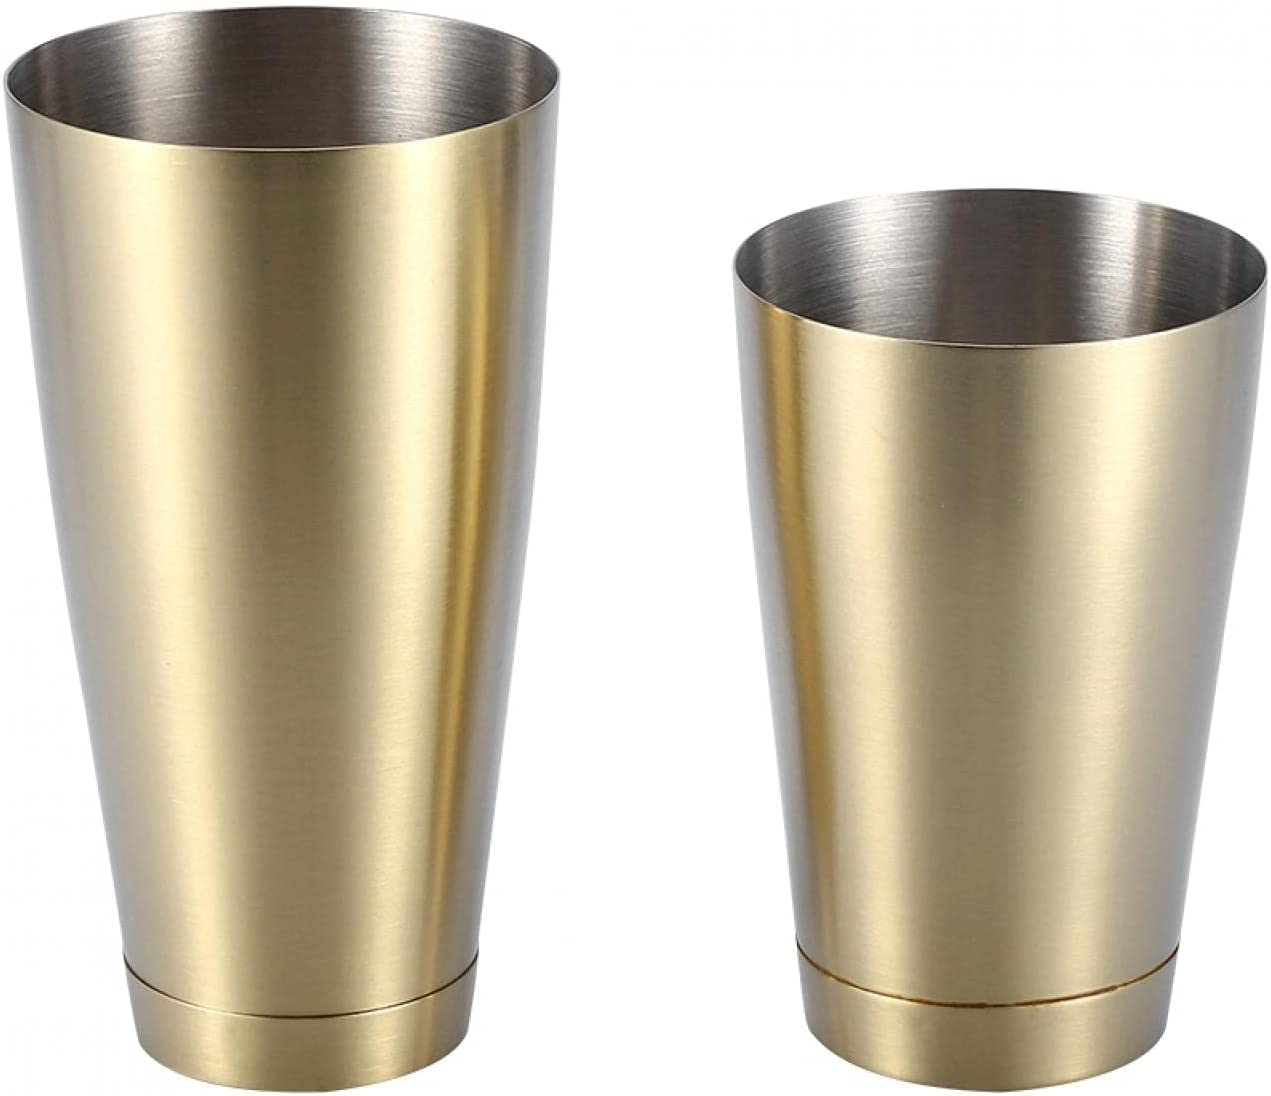 Cheap OFFicial shop sale Cocktail Cup Shaker Stainless Sturdy Steel f